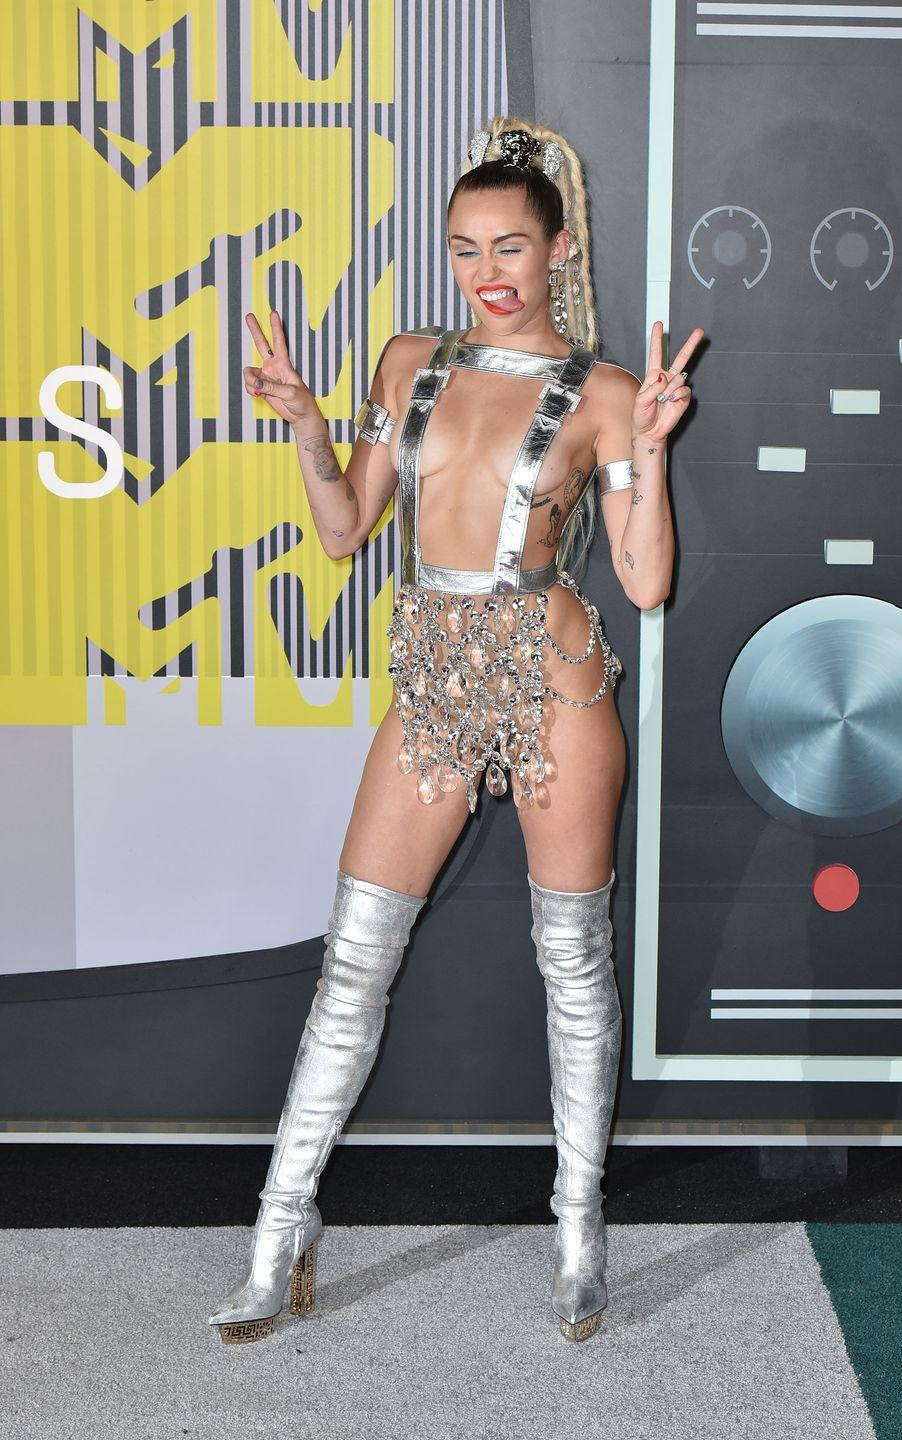 """<p>As the host of the 2015 VMAs, Miley Cyrus had <a href=""""https://www.harpersbazaar.com/celebrity/red-carpet-dresses/news/g6143/miley-cyrus-vma-fashion/"""" rel=""""nofollow noopener"""" target=""""_blank"""" data-ylk=""""slk:several outlandish outfits"""" class=""""link rapid-noclick-resp"""">several outlandish outfits</a> she wore throughout the evening. This <a href=""""https://people.com/style/vmas-2015-miley-cyrus-opts-for-silver-suspenders-and-nothing-else-for-first-look-of-the-night/"""" rel=""""nofollow noopener"""" target=""""_blank"""" data-ylk=""""slk:dress"""" class=""""link rapid-noclick-resp"""">dress </a>(if you can call it that) by Atelier Versace was her first ensemble of the night. </p>"""